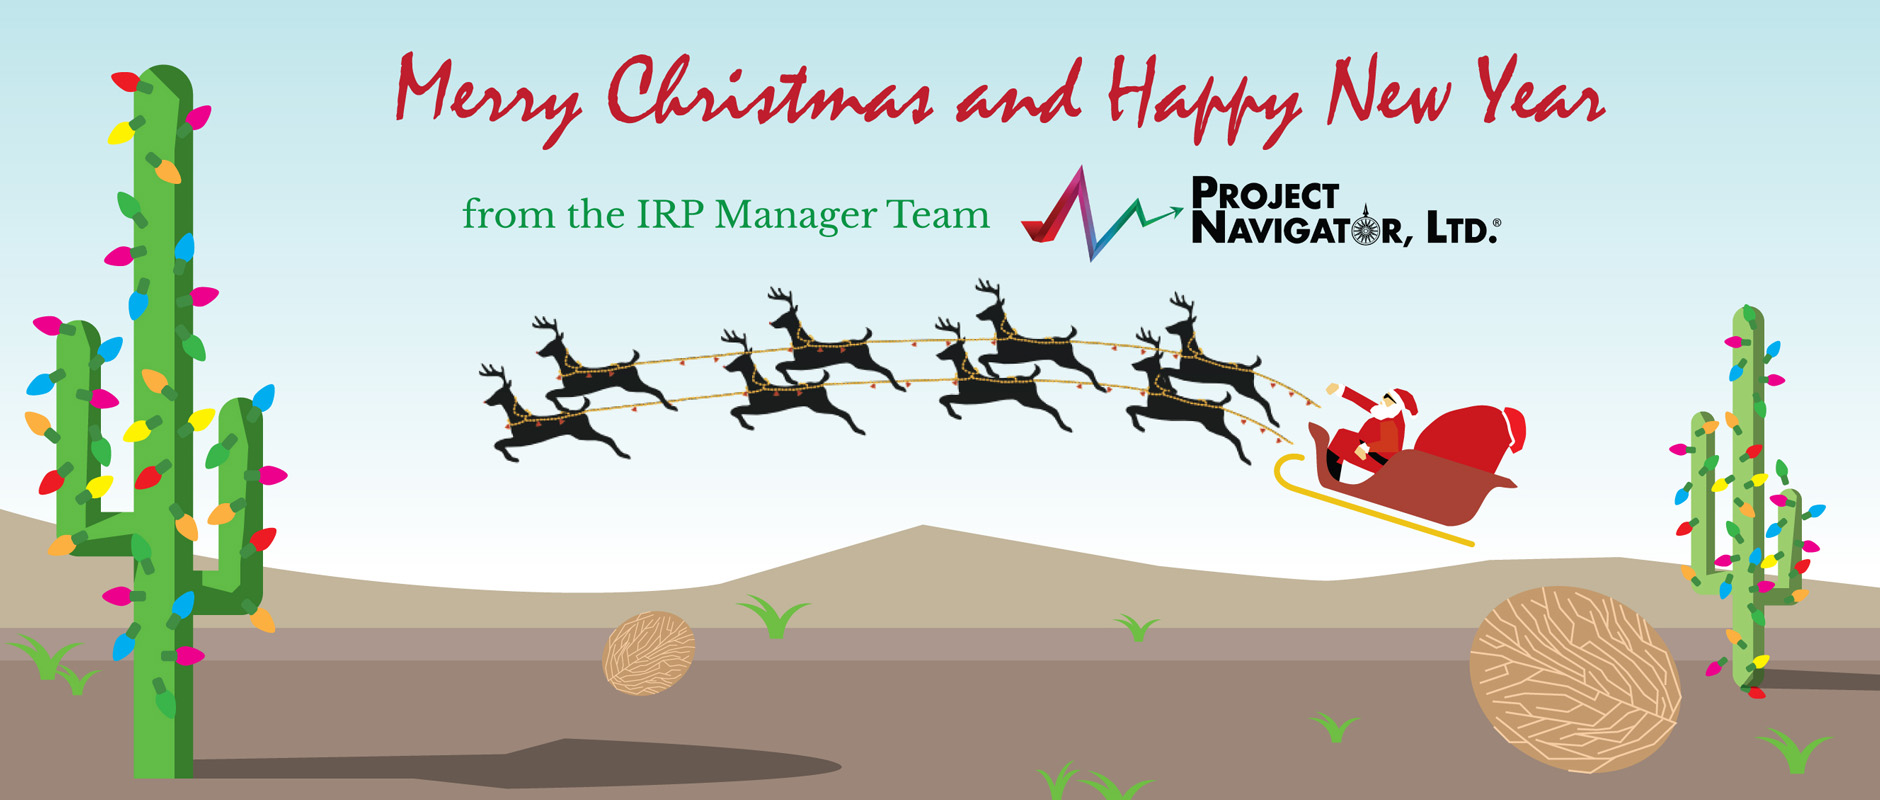 Happy Holidays from the IRP Manager